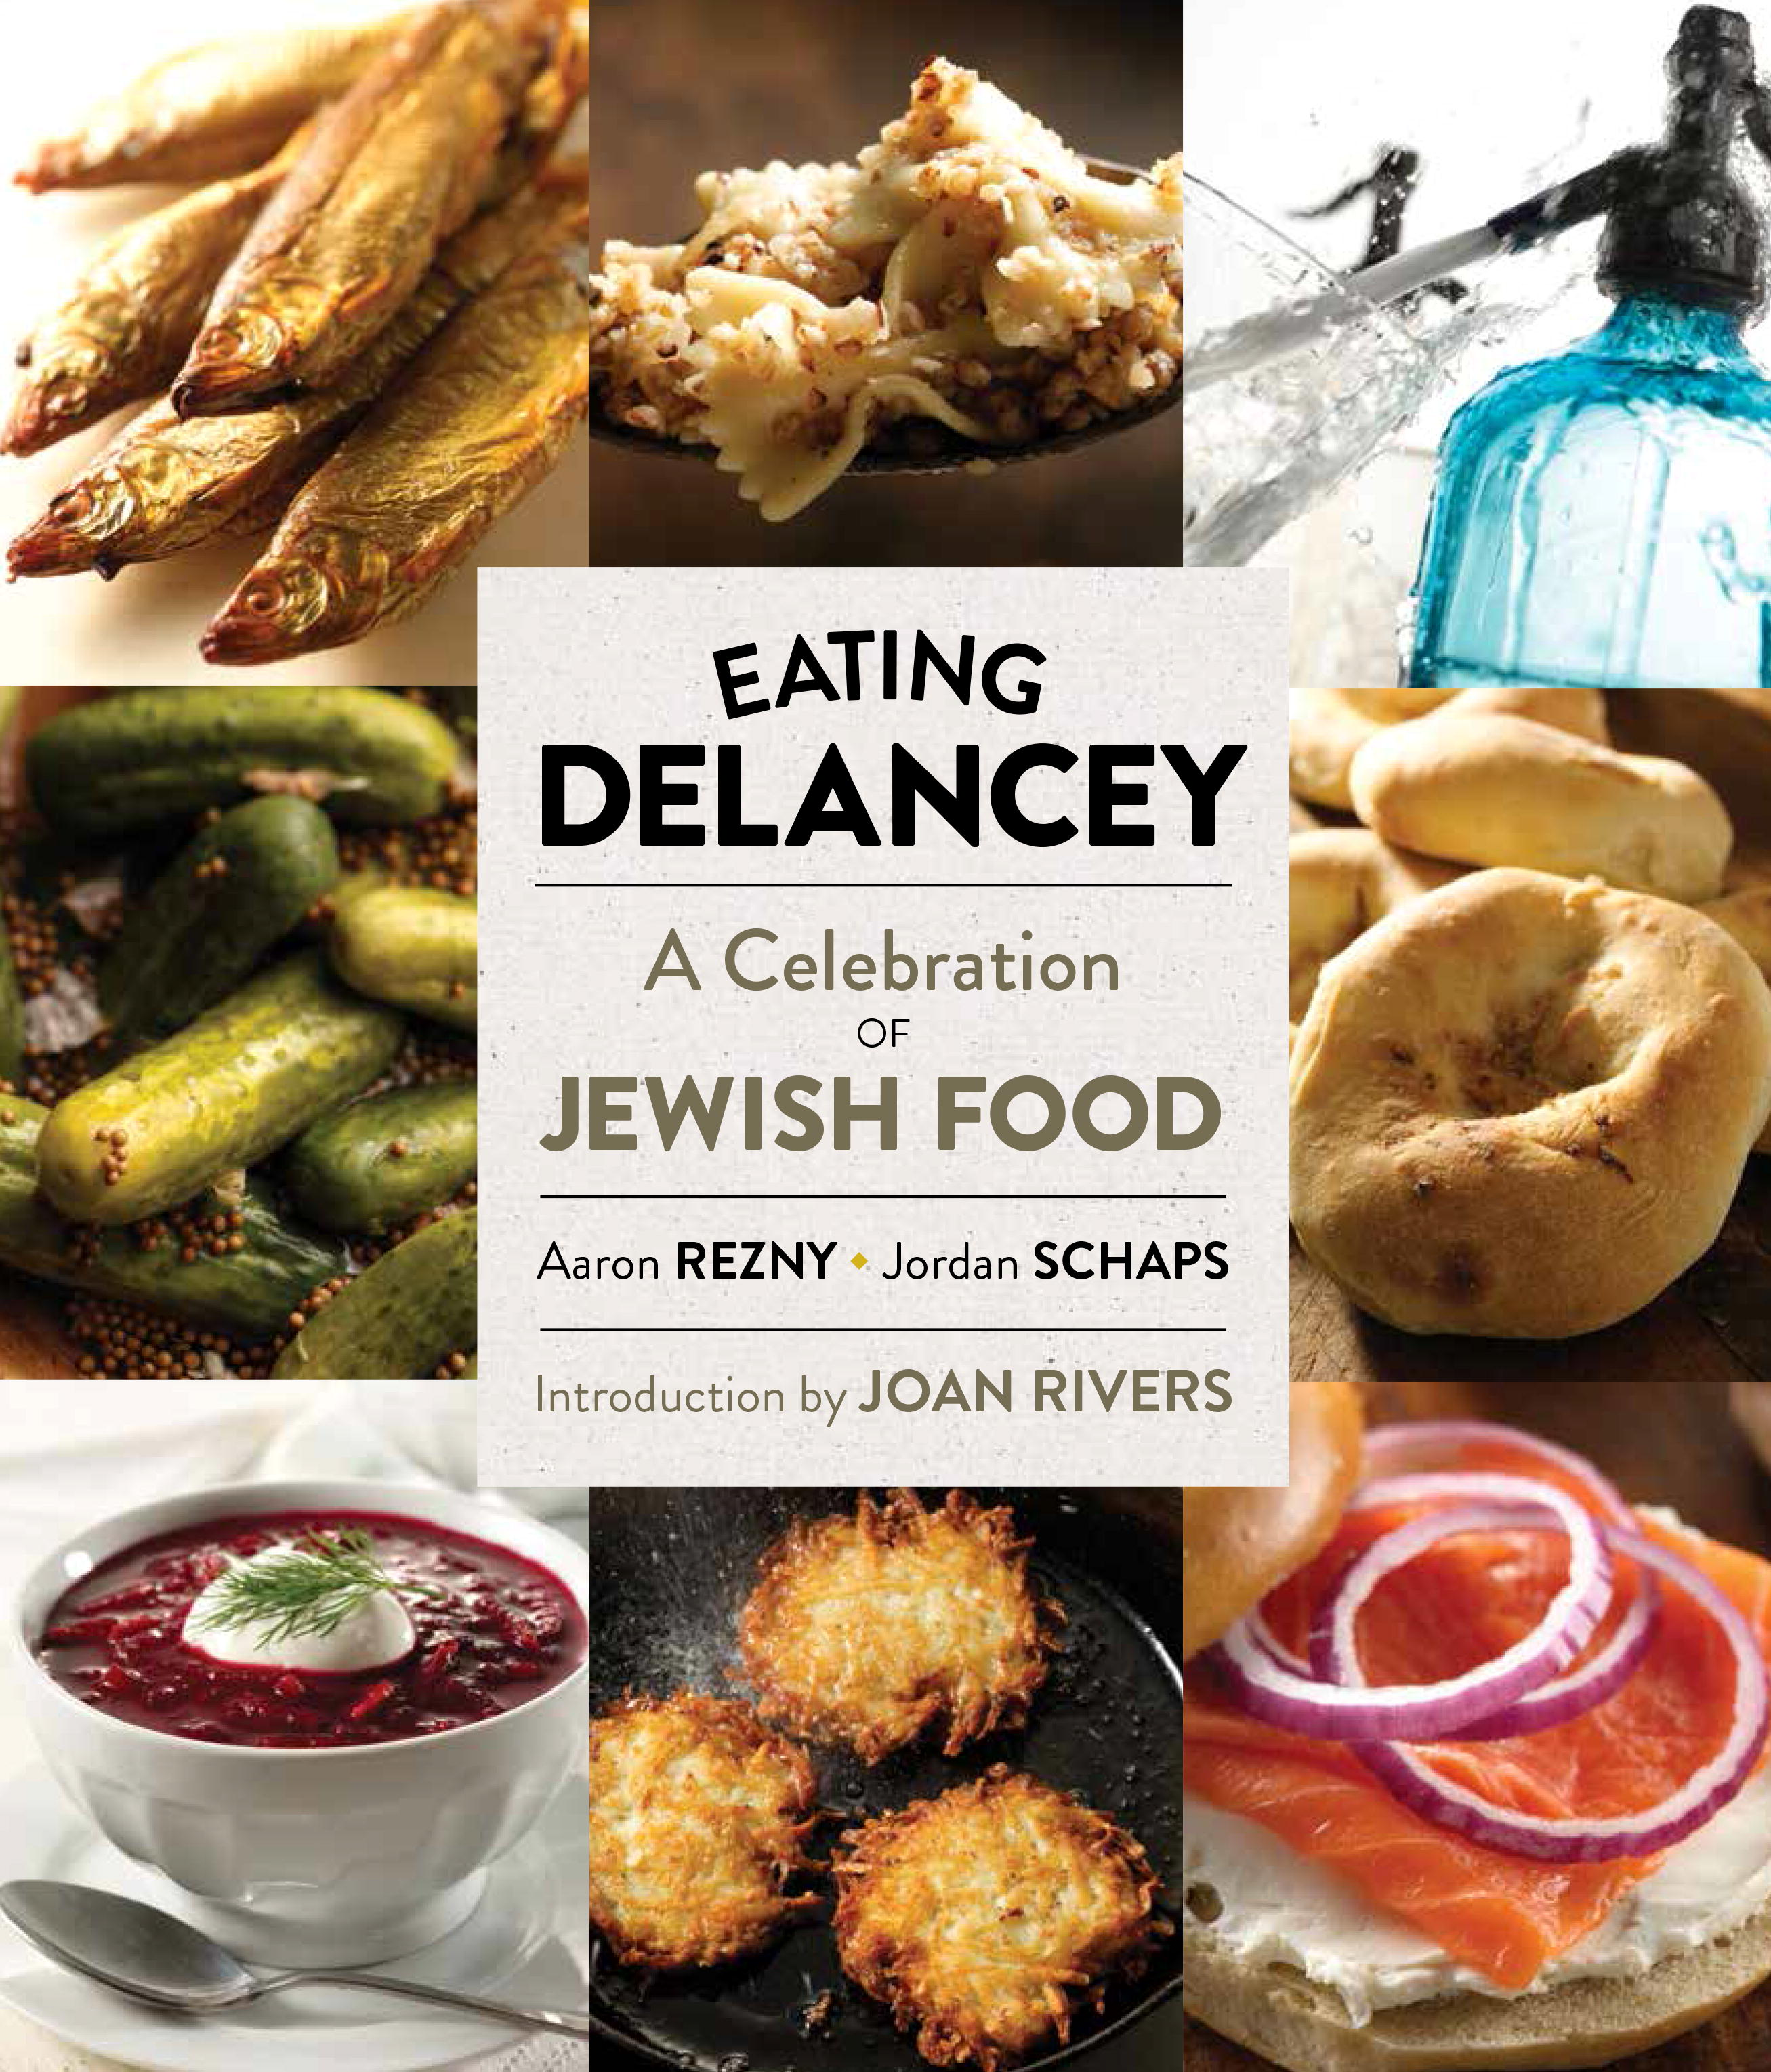 powerHouse Launch of Eating Delancey: A Celebration of Jewish Food by Aaron Rezny & Jordan Schaps